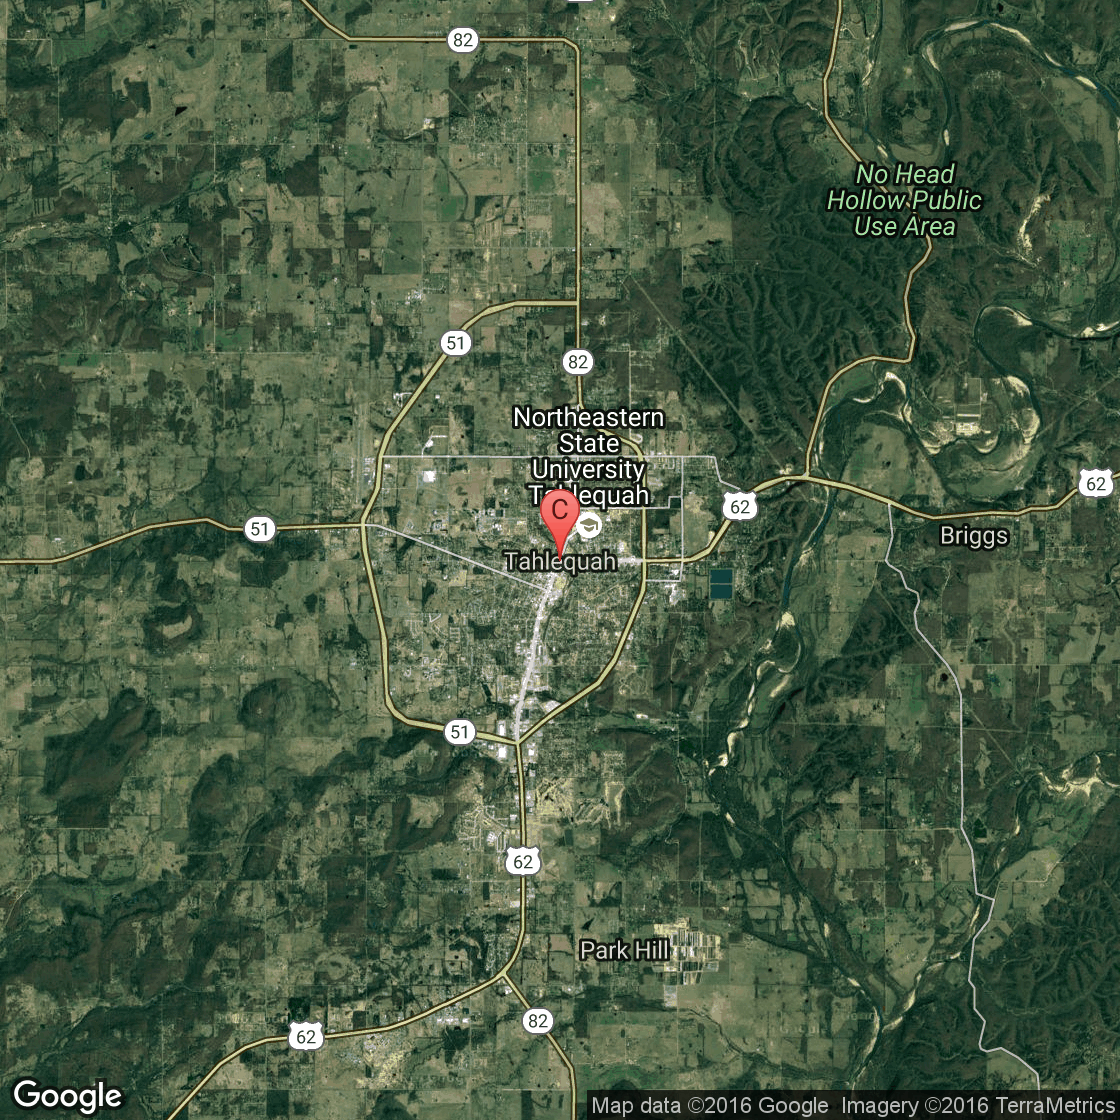 Things to do in tahlequah oklahoma usa today for Ok google plenty of fish